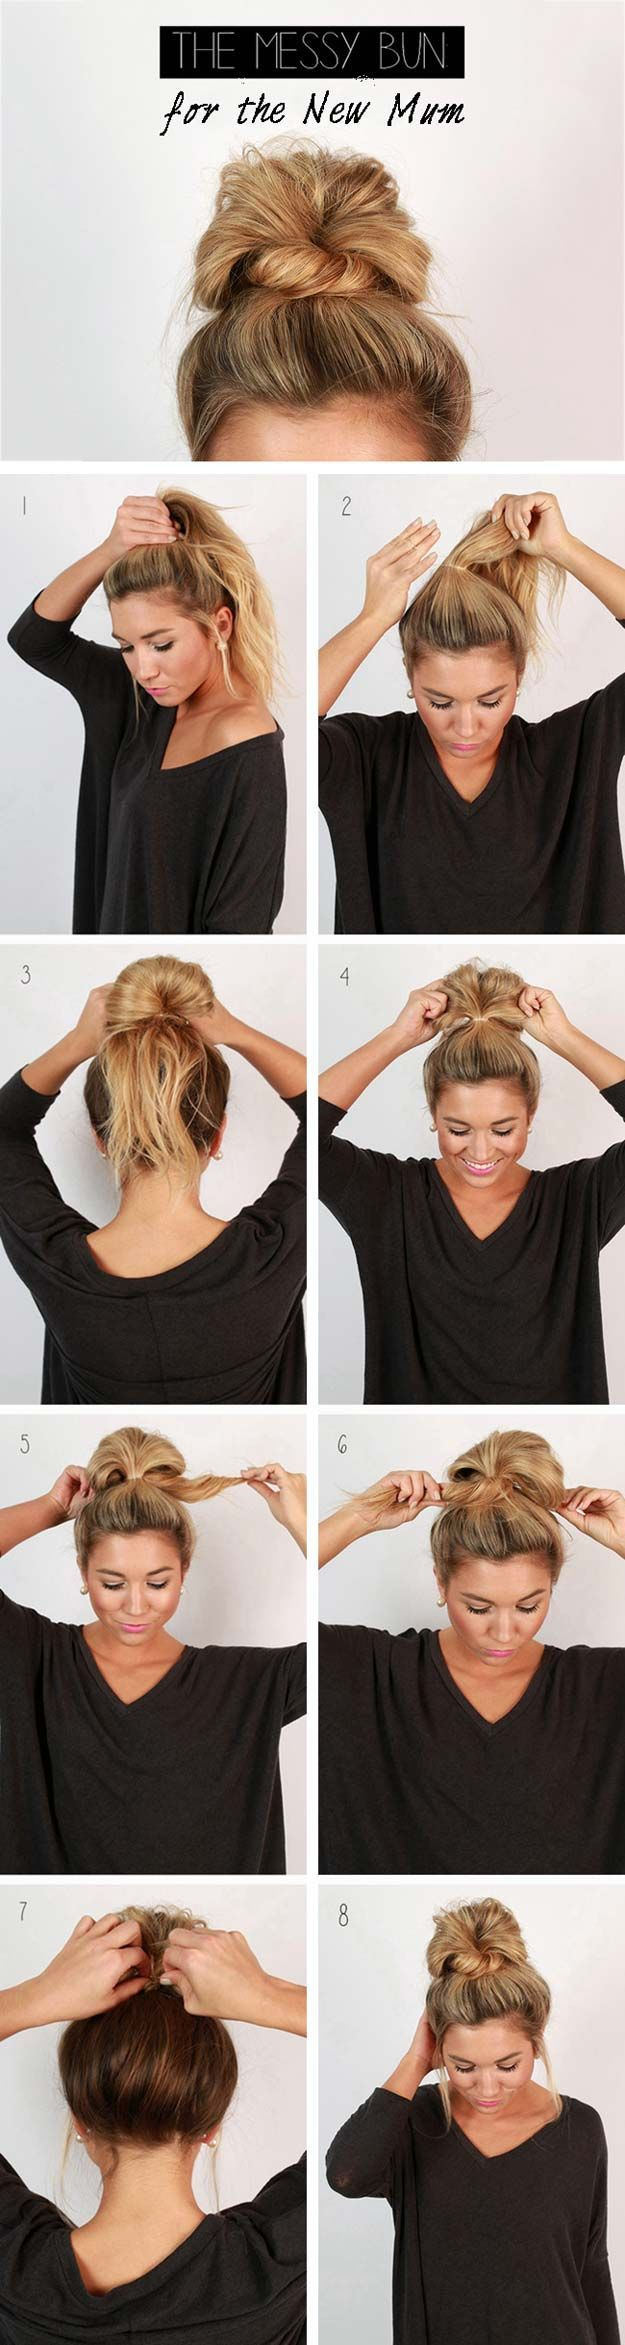 41 Diy Cool Easy Hairstyles That Real People Can Actually Do At Home